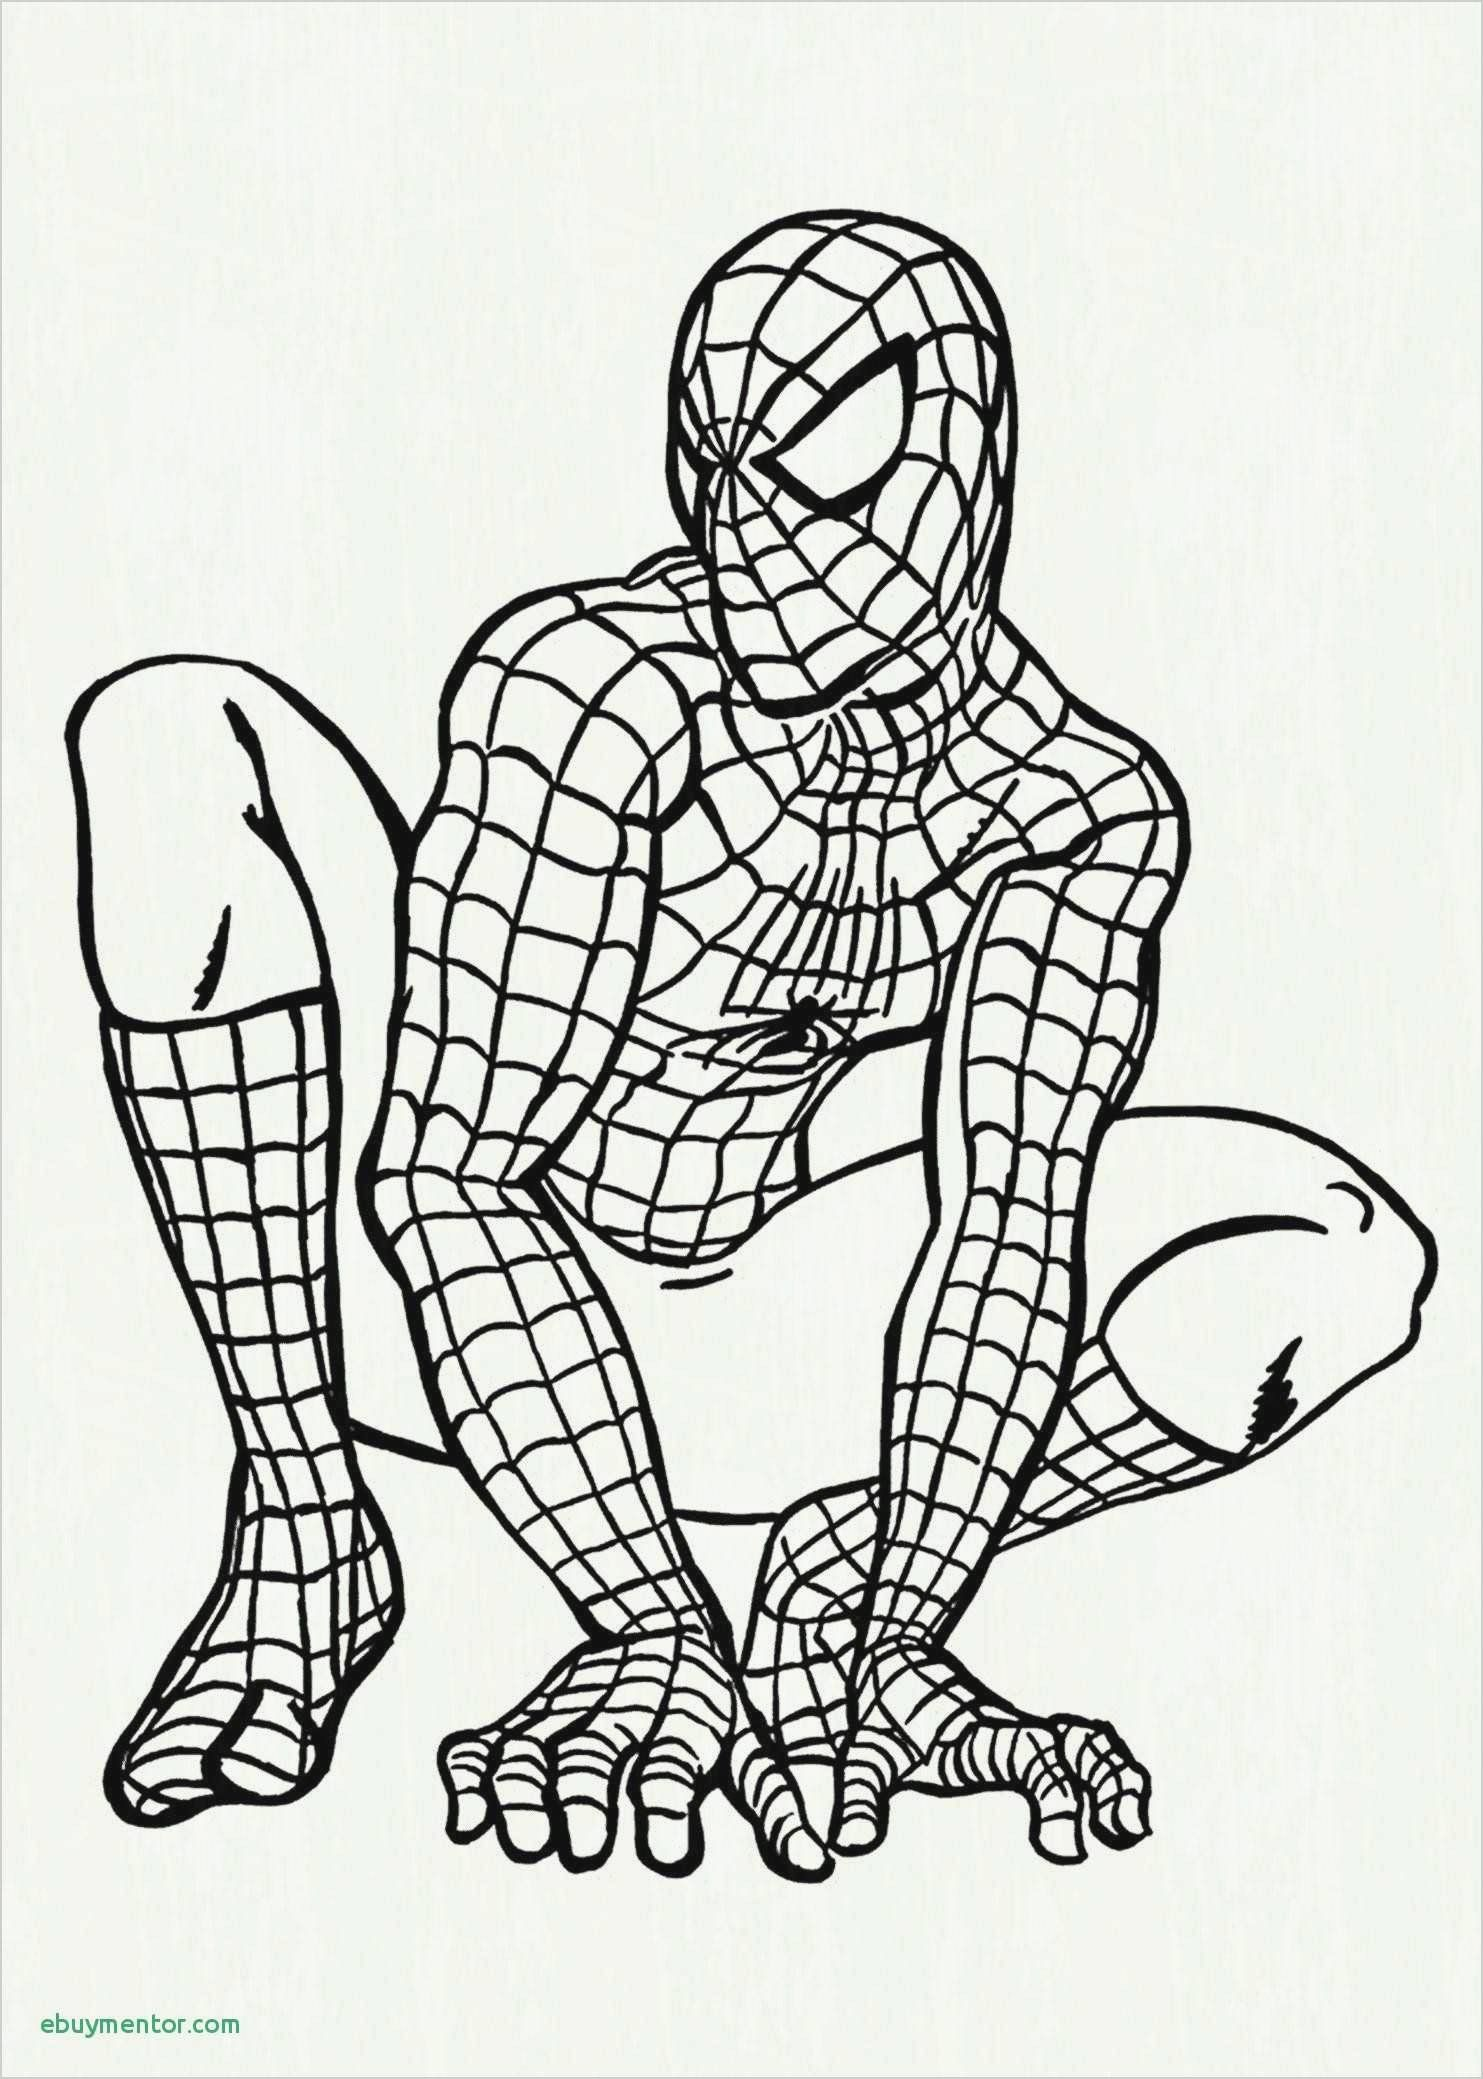 Superhero Coloring Pages For Kids Coloring Pages Coloring Pages Color Me Books For Adults In 2020 Superhero Coloring Pages Fairy Coloring Pages Love Coloring Pages